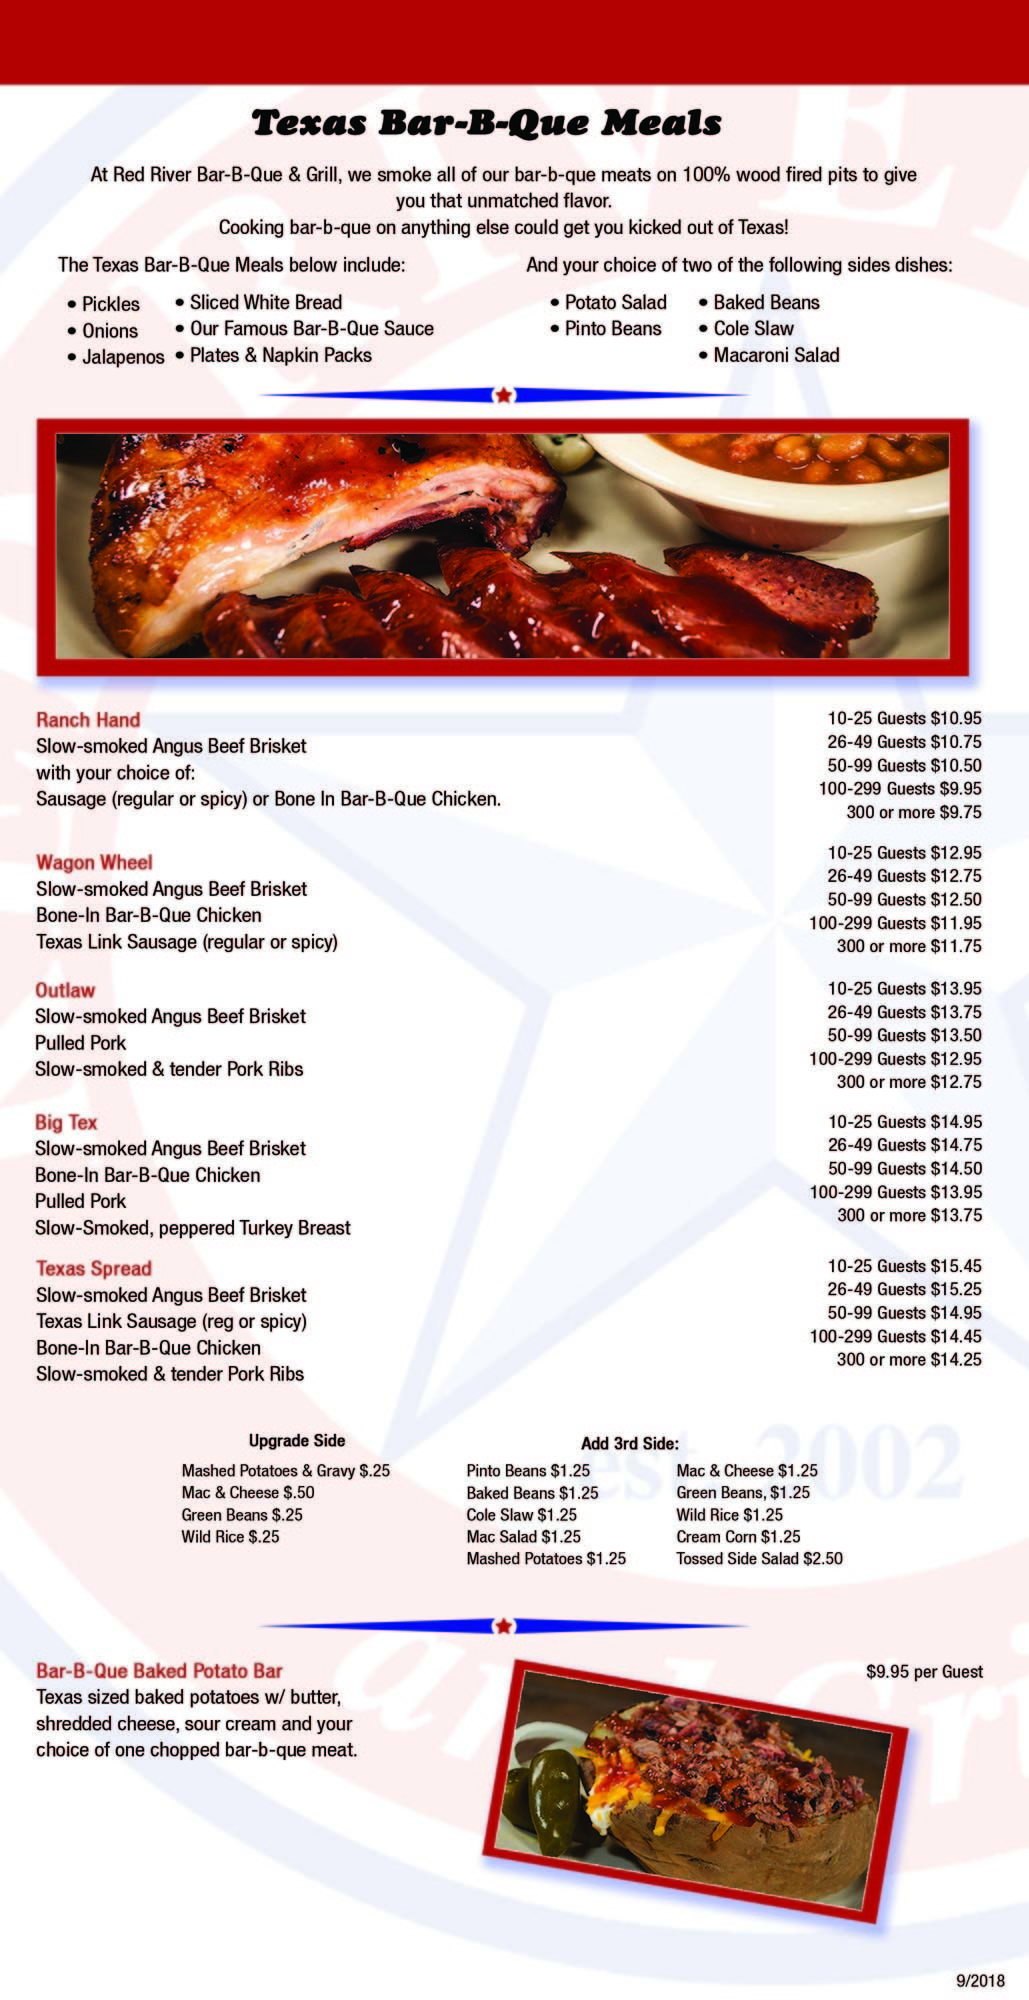 Are You Looking For BBQ Catering For Your Family Or Company